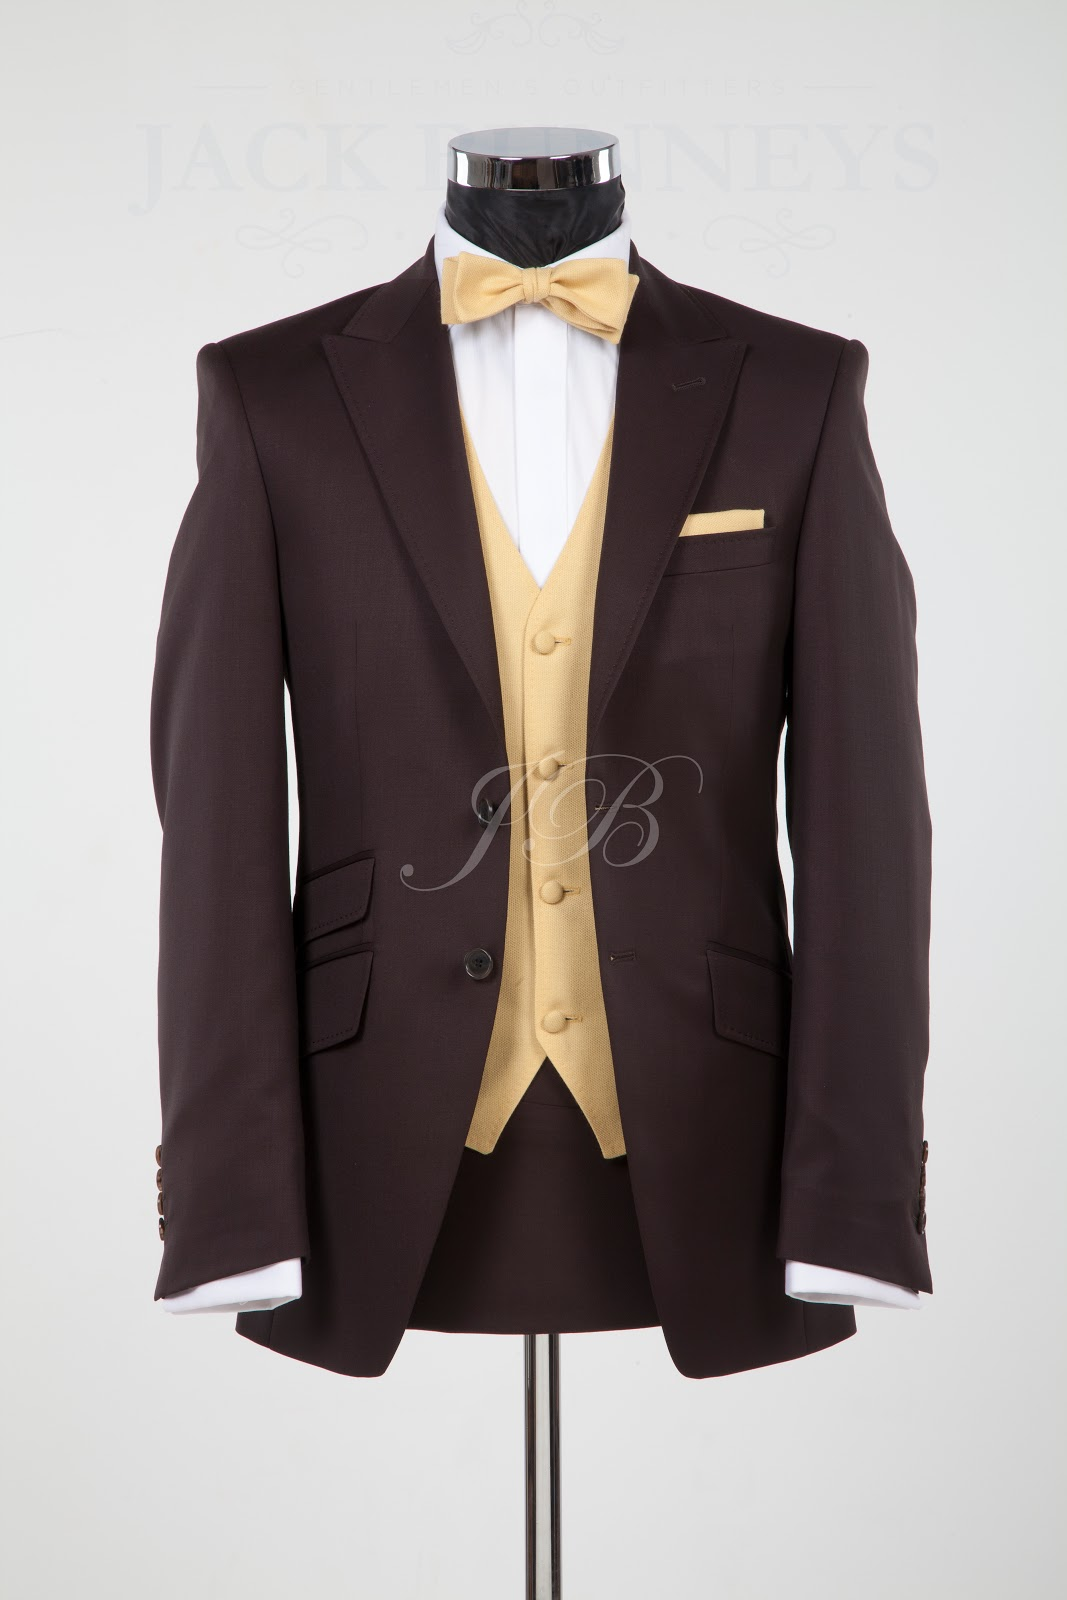 Classy suits SUIT AND TIE Bow tie suit Suits with Harvey Specter and Mike Ross Navy bow tie Suit / Fashion Men's Fashion Blog Fashion outfits Tie Styles Men Accessories What To Wear Today Reign Bash Dress Shapes Casual Wear Bow Ties Suits Male .